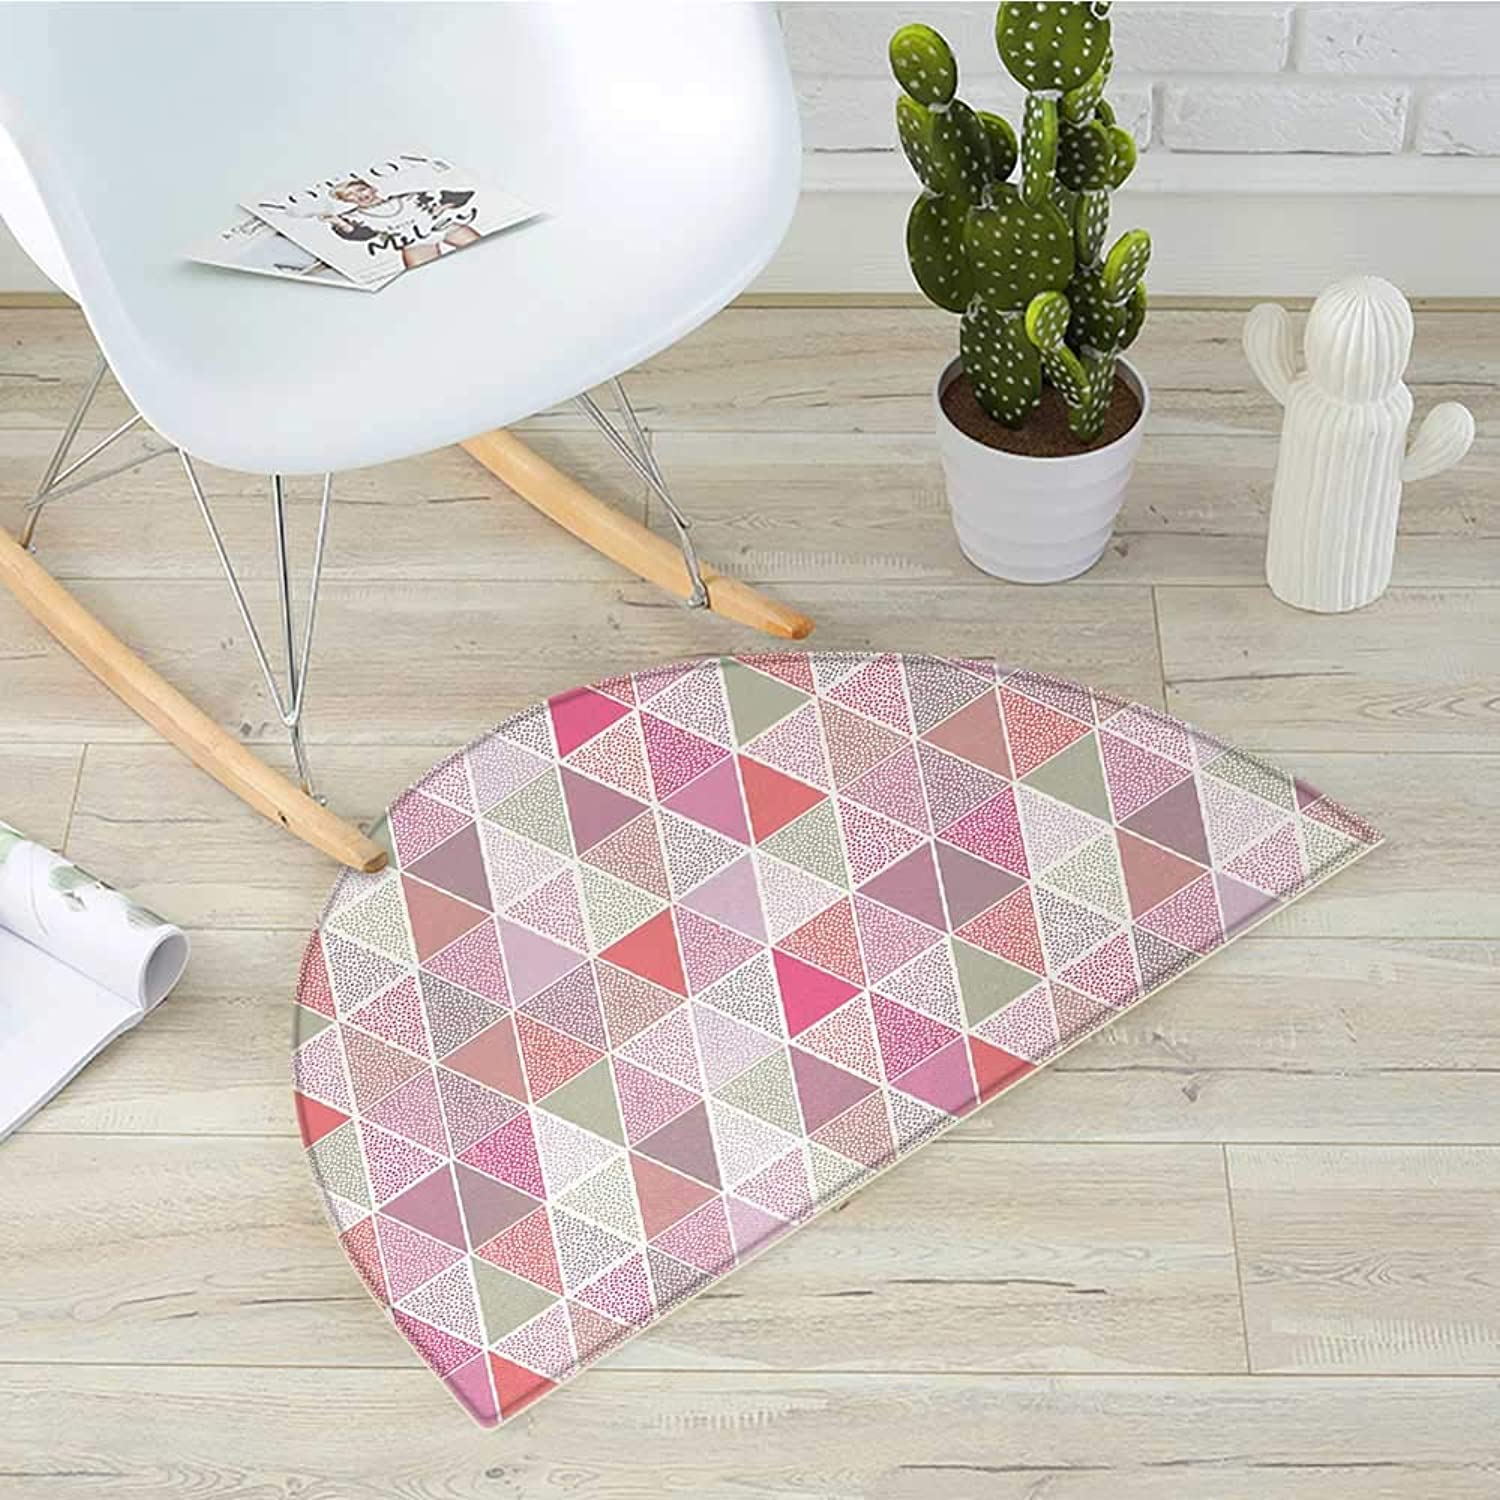 Peach Semicircle Doormat colorful Geometric Design Triangles with Polka Dots Octagon Shape Pattern Triangular Halfmoon doormats H 31.5  xD 47.2  Multicolor